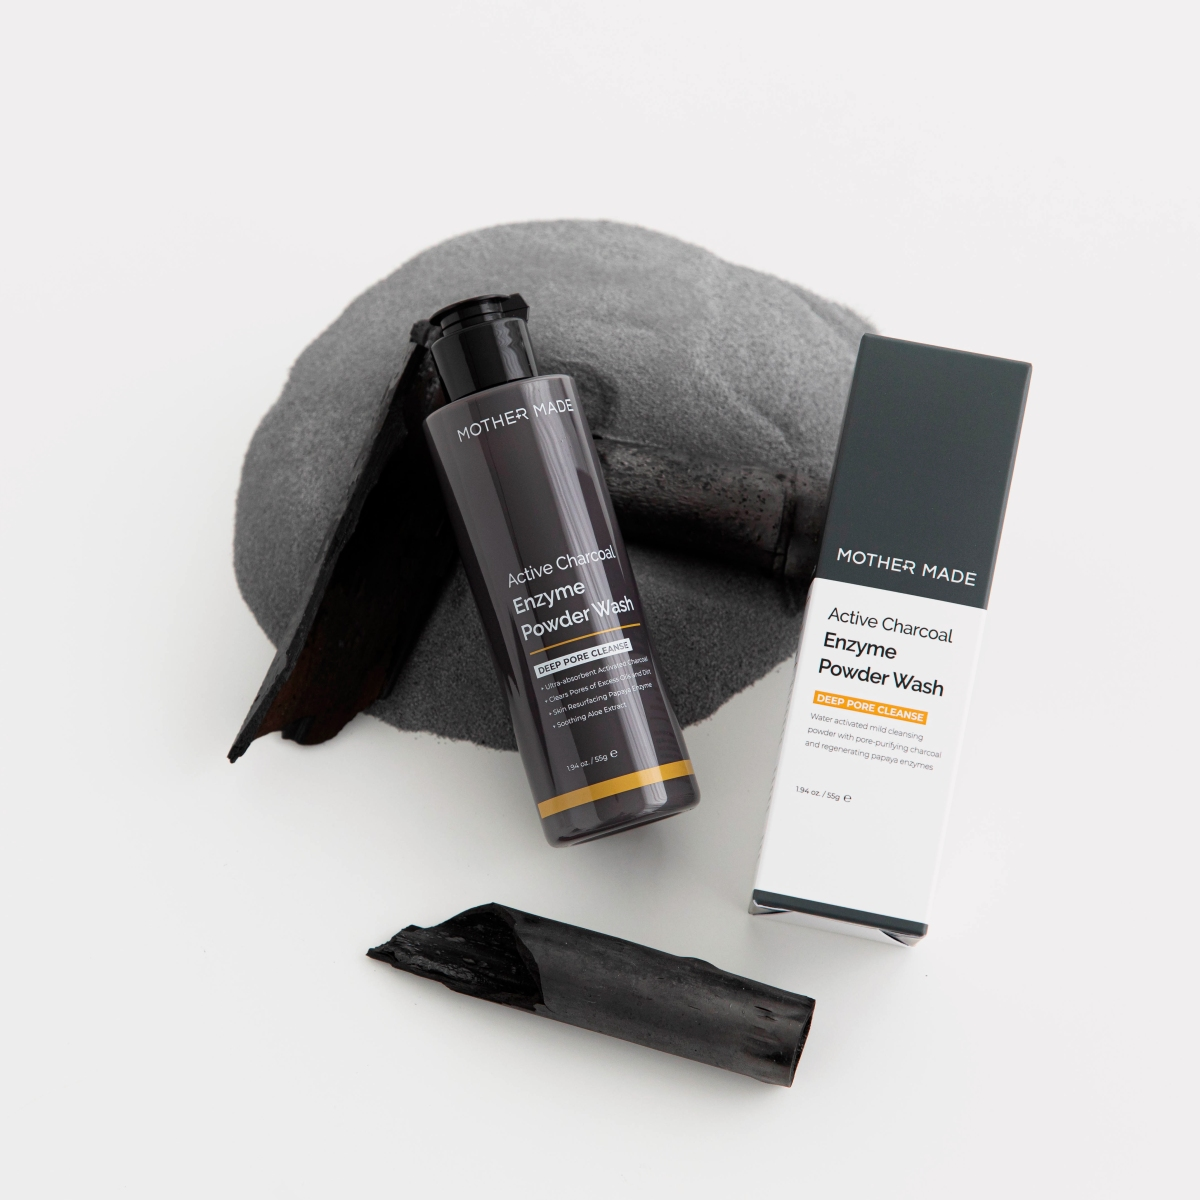 Why we made Active Charcoal Enzyme PowderWash?